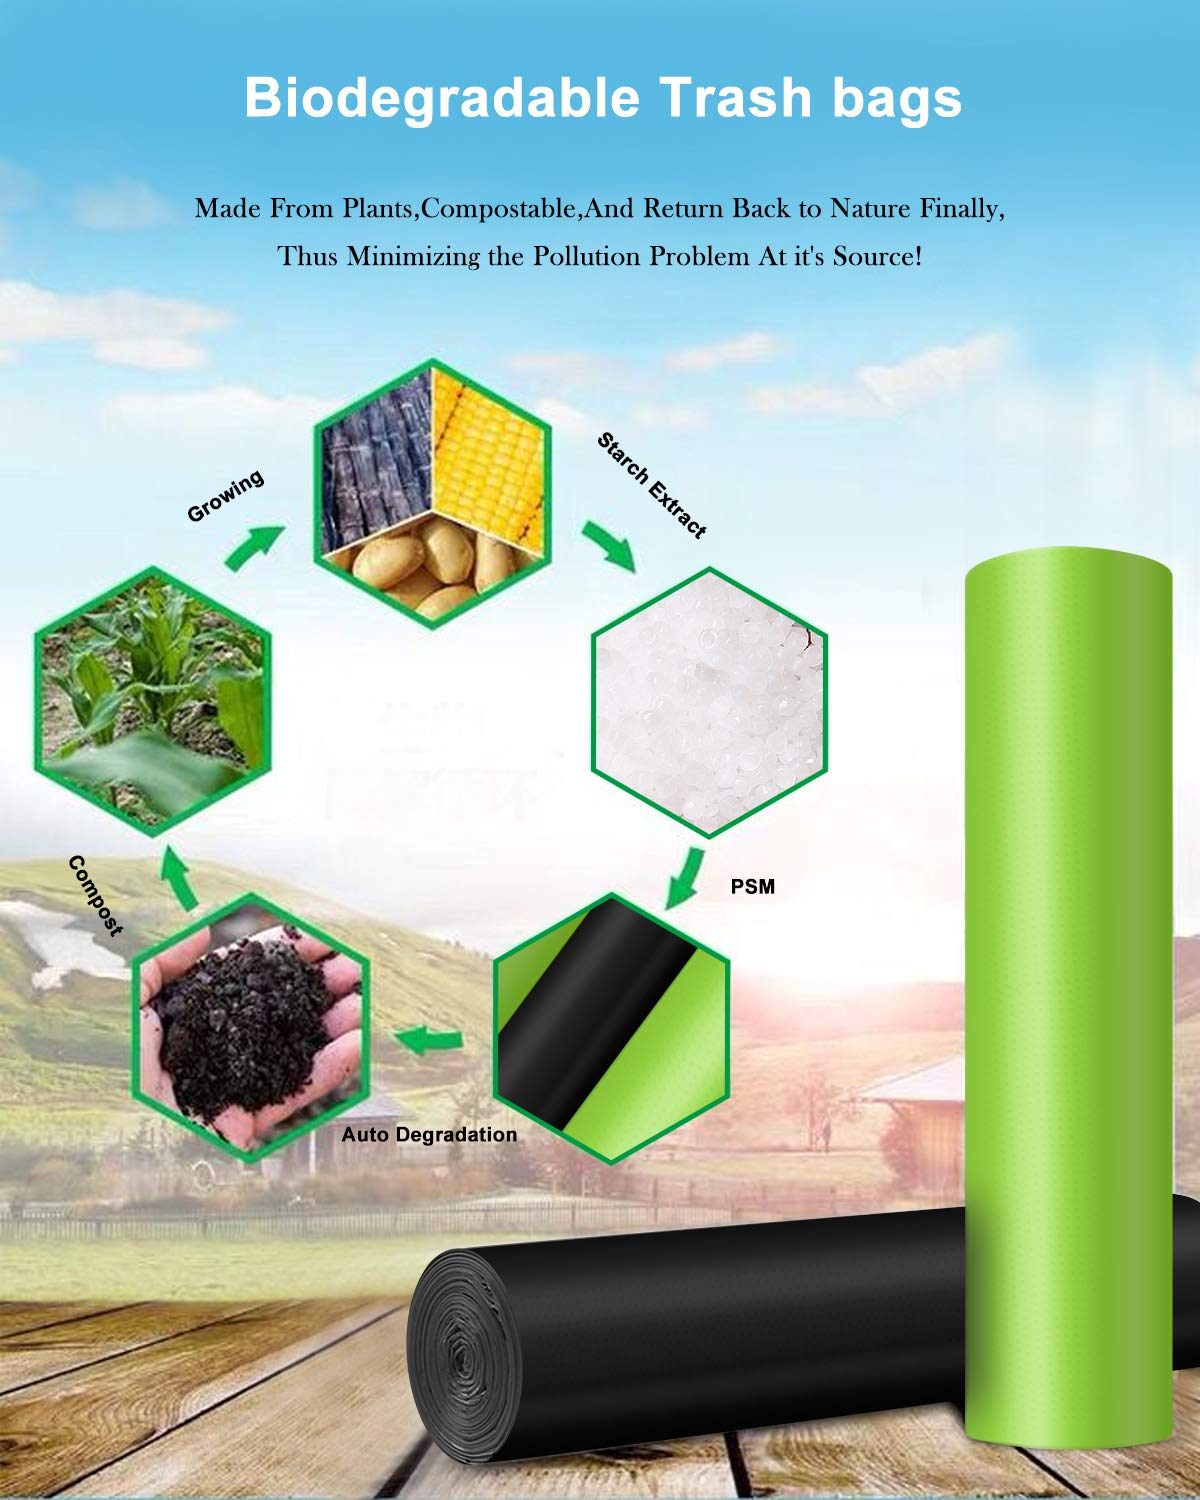 Biodegradable Garbage Bags,4-6 Gallon Small Trash Bags,100 Counts Small Garbage Bags Leak Proof Compostable Bags Wastebasket Liners for Office,Home,Bathroom,Bedroom,Car,Kitchen,Pet(Green+Black)